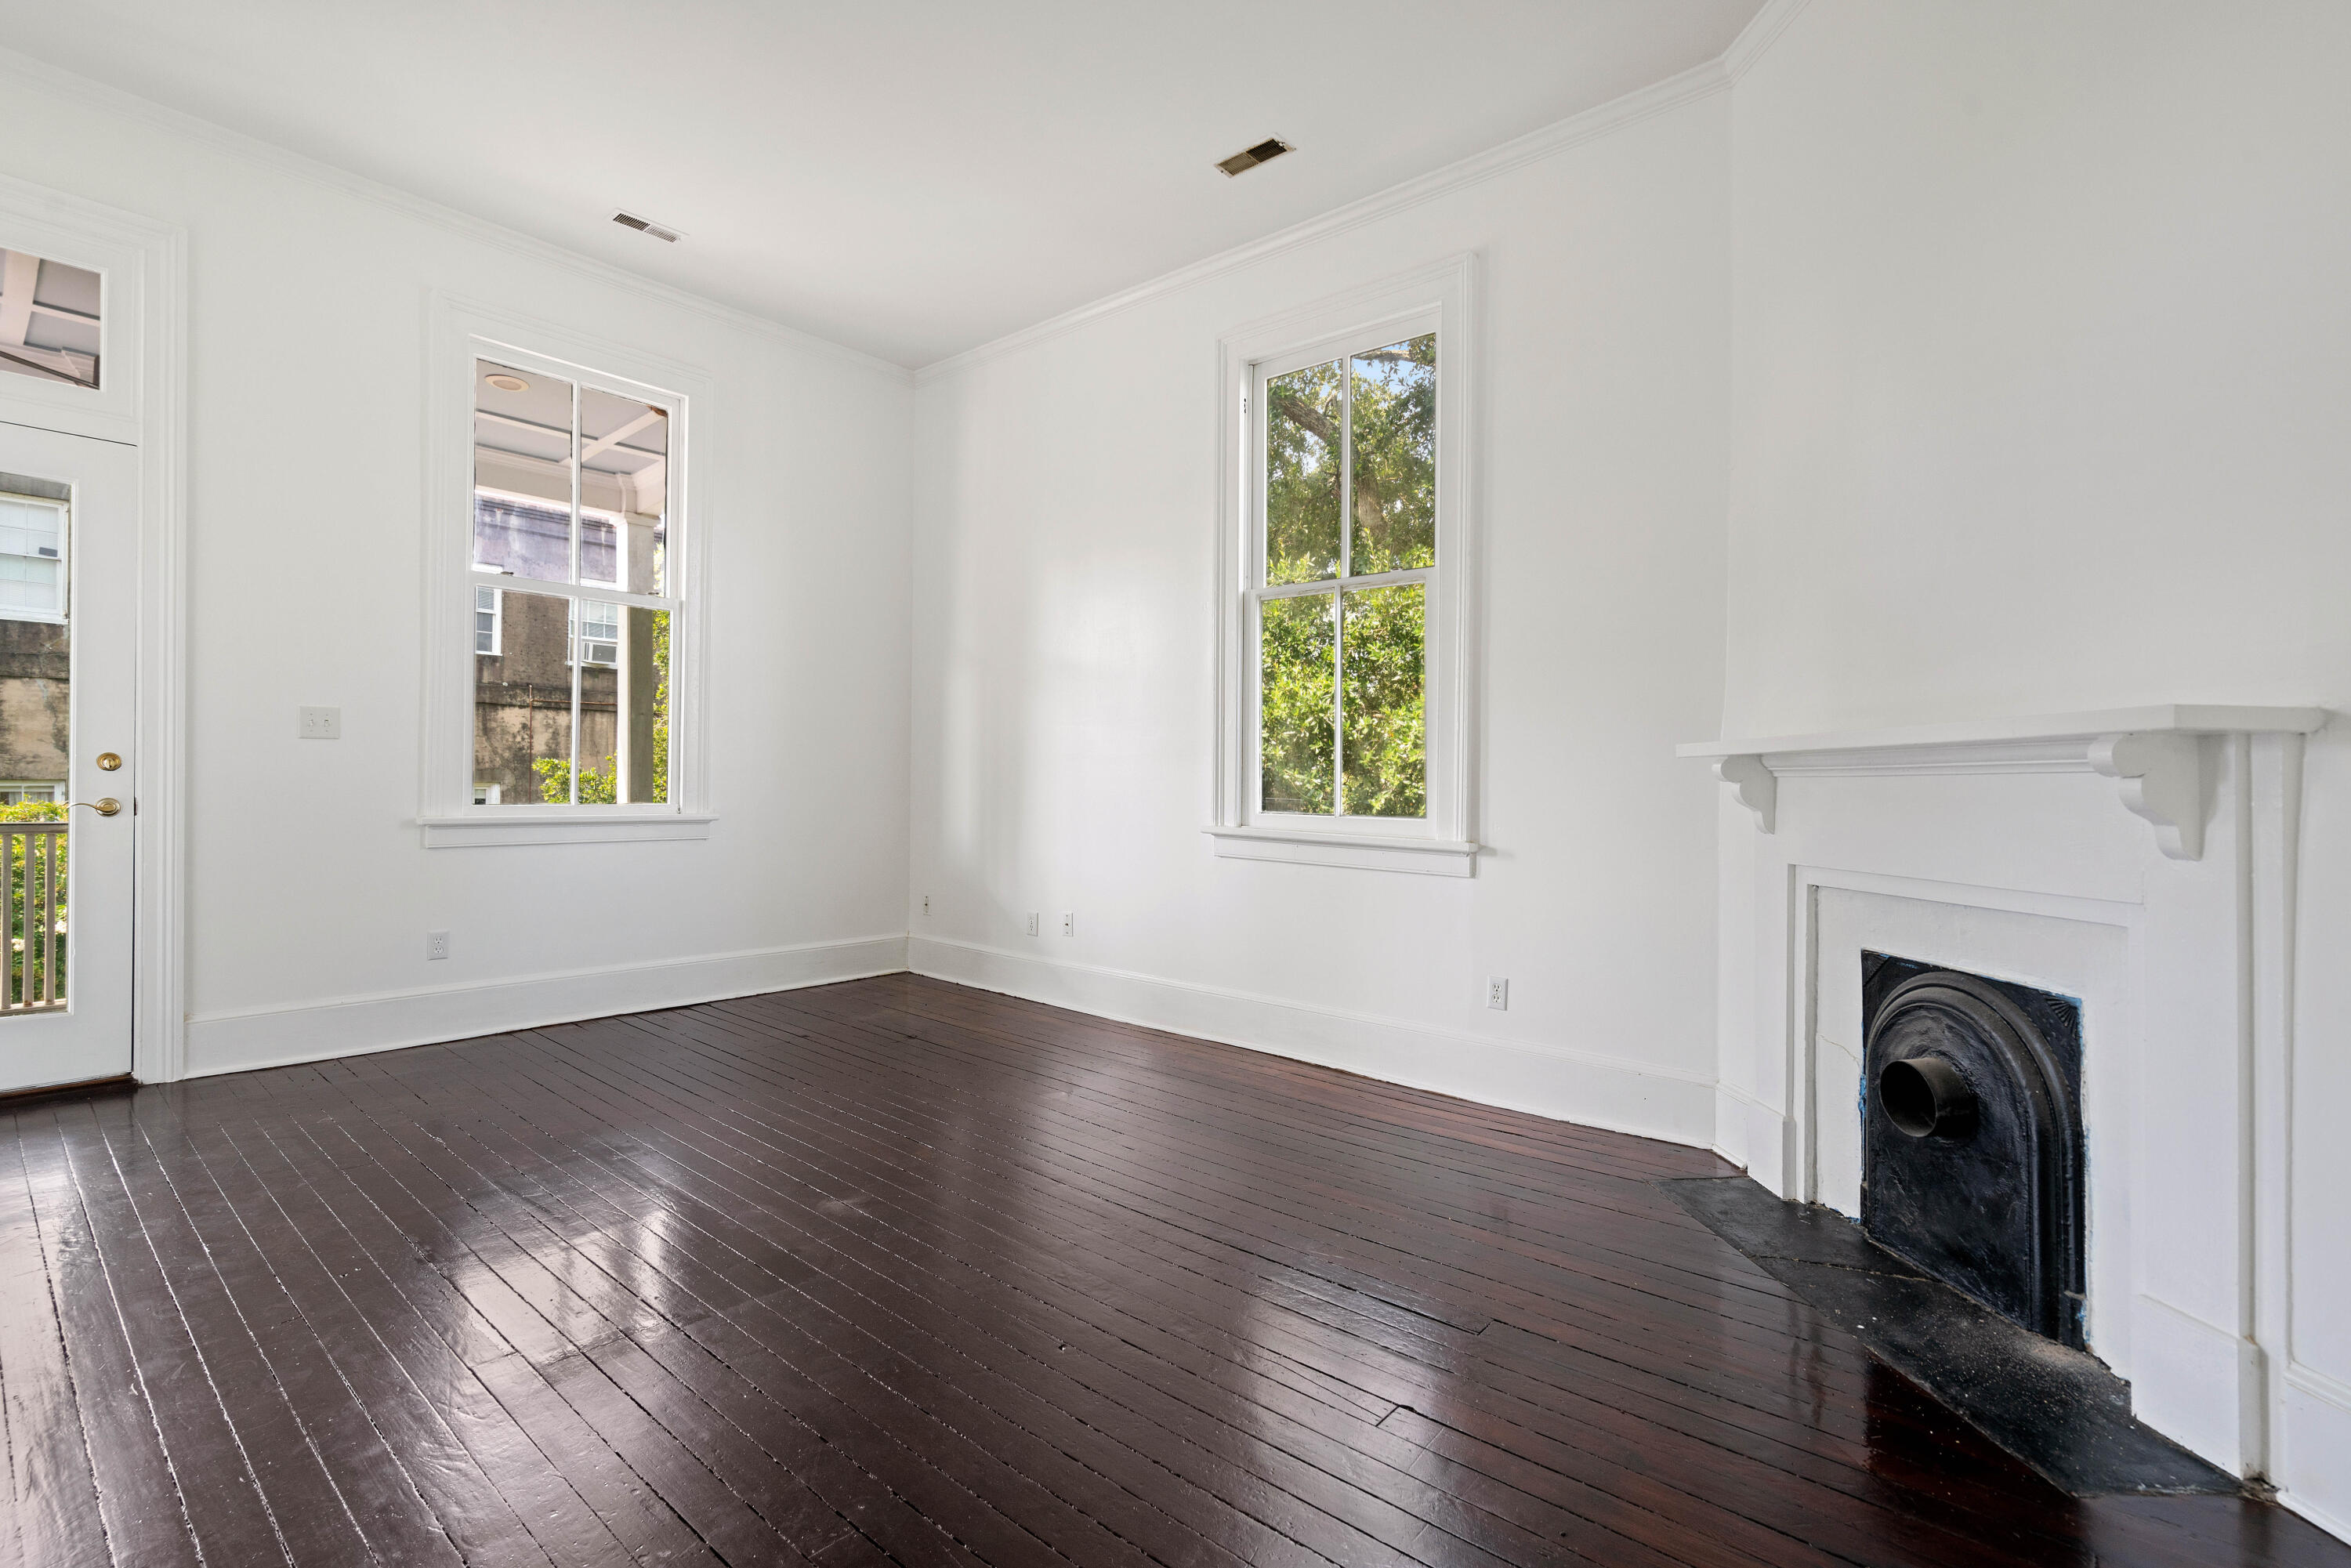 24 Chalmers Street, Charleston, 29401, ,MultiFamily,For Sale,Chalmers,21027527